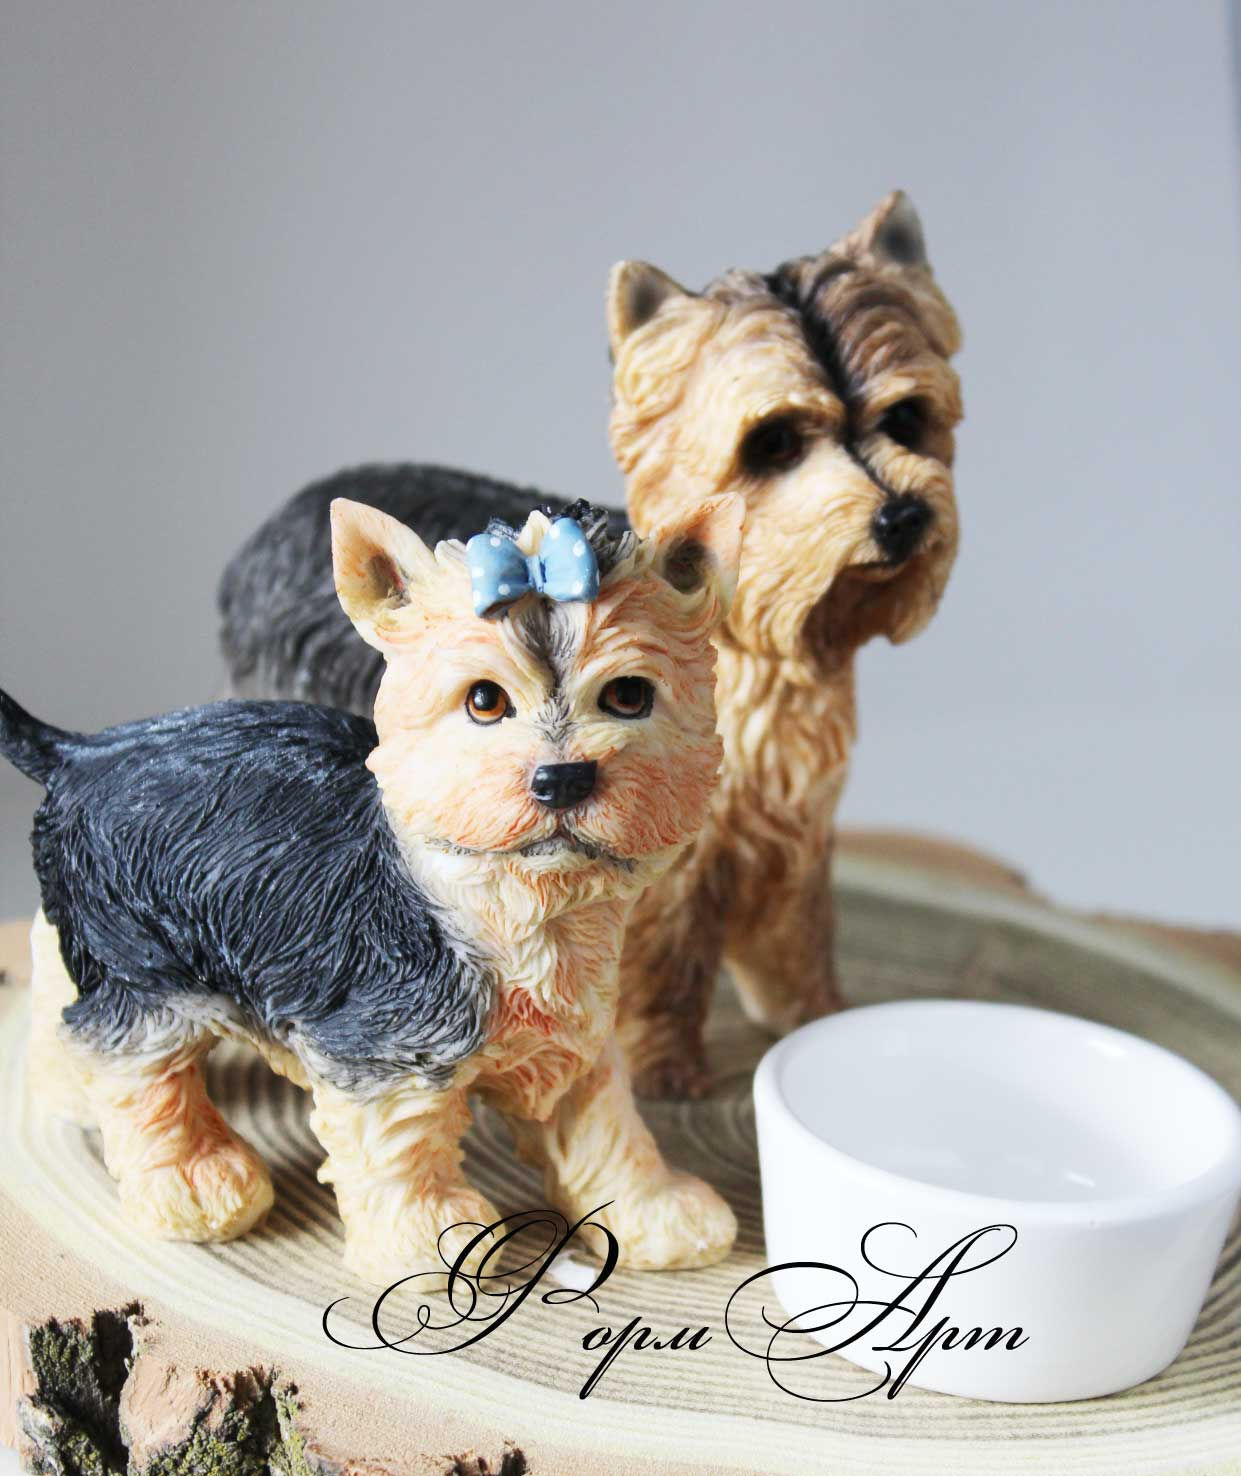 Gallery images and information: yorkshire terrier 7 kilos